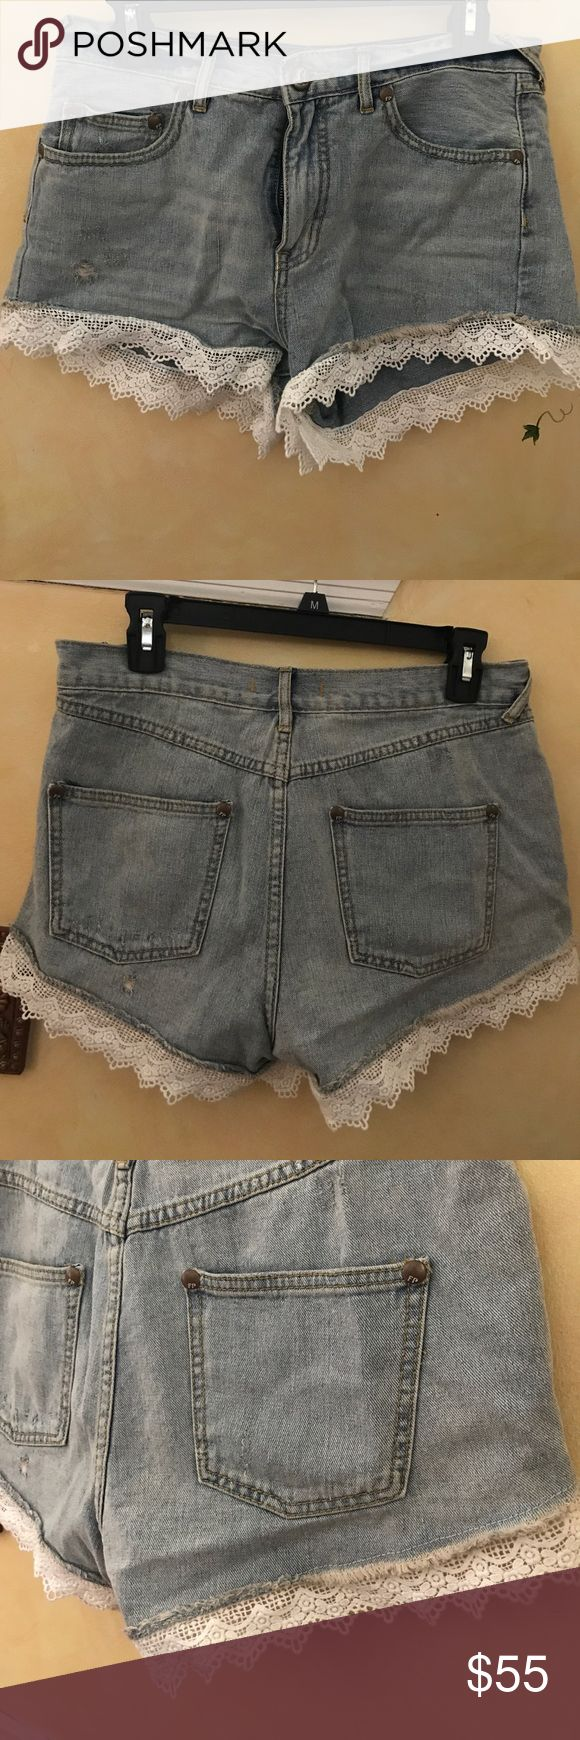 Free people Light Denim High-Waisted Shorts These light Denim free people high waisted Denim shorts have stunning lace detailing that adds an extra flair to Denim shorts. Love these shorts with boots in the fall, sandals in the summer and even fun chunky nude heels!! MUST have shorts that fit like a glove ! Free People Shorts Jean Shorts